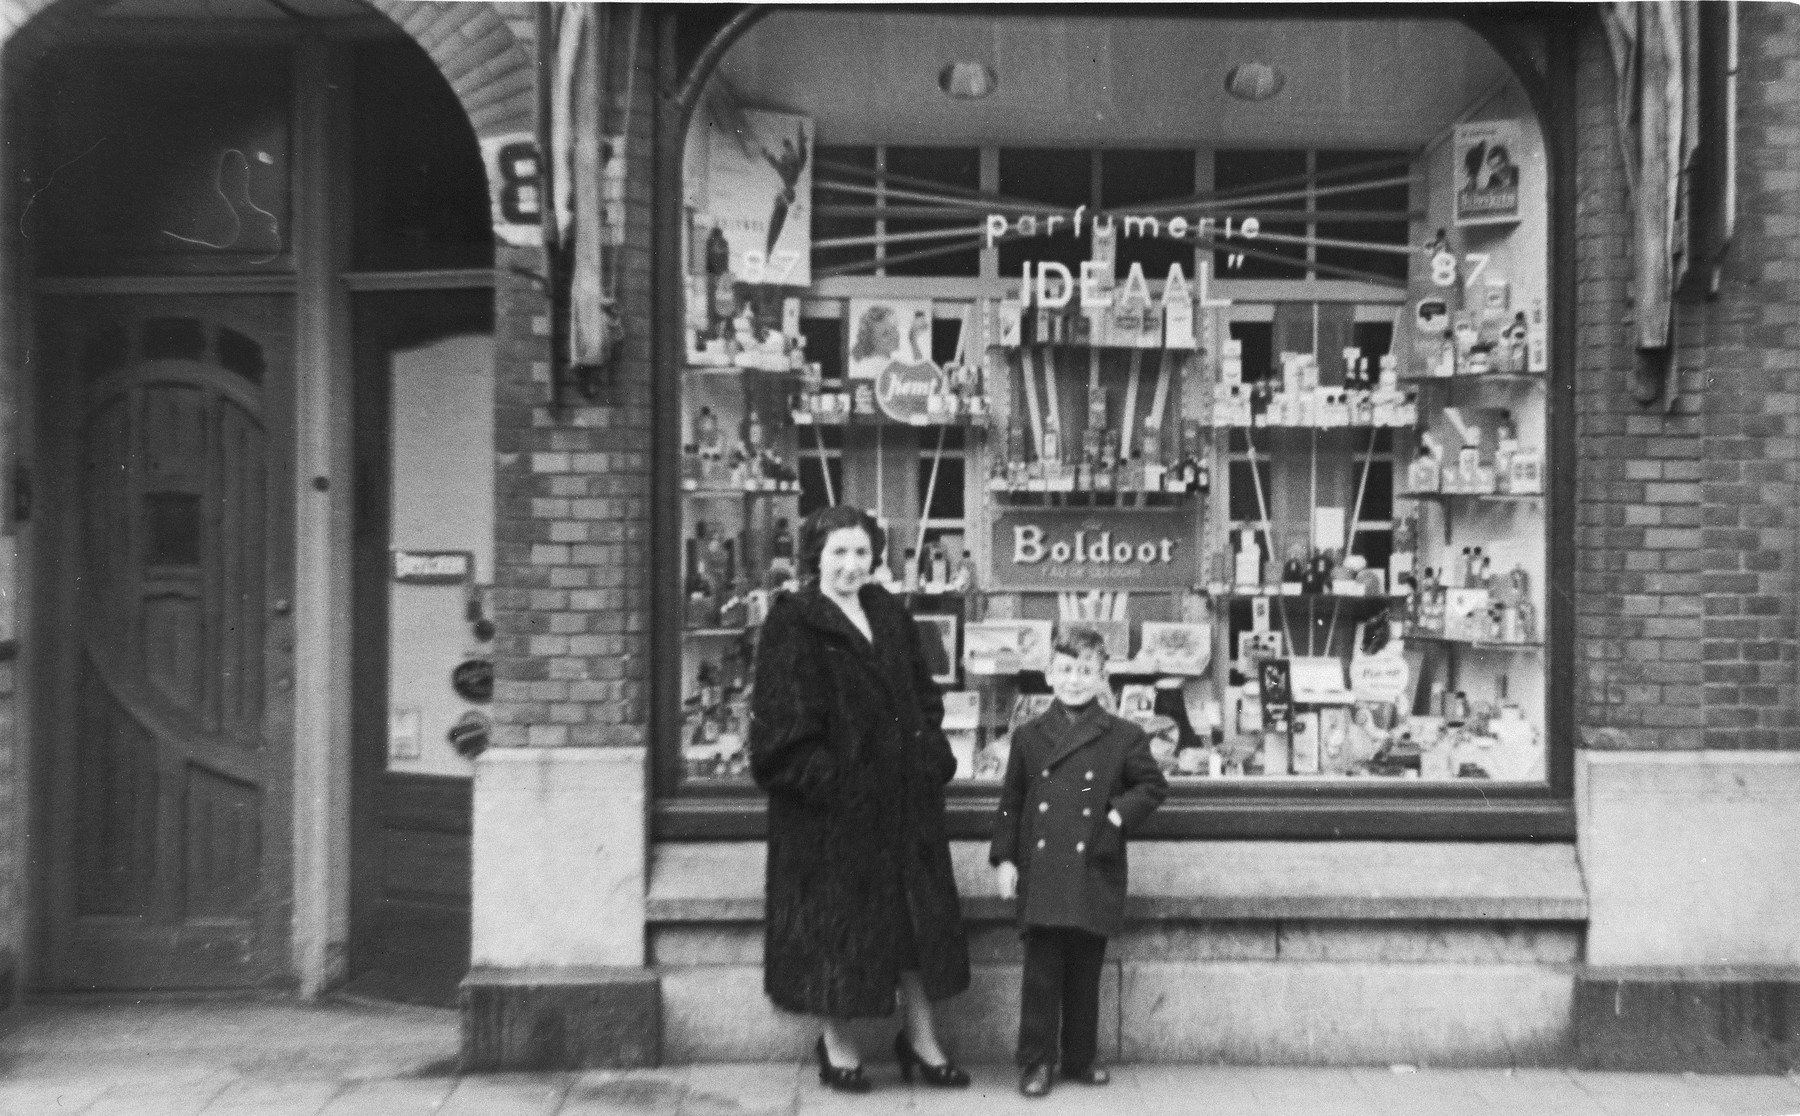 Gitel and Alfred Münzer pose in front of their cosmetics store in The Hague.